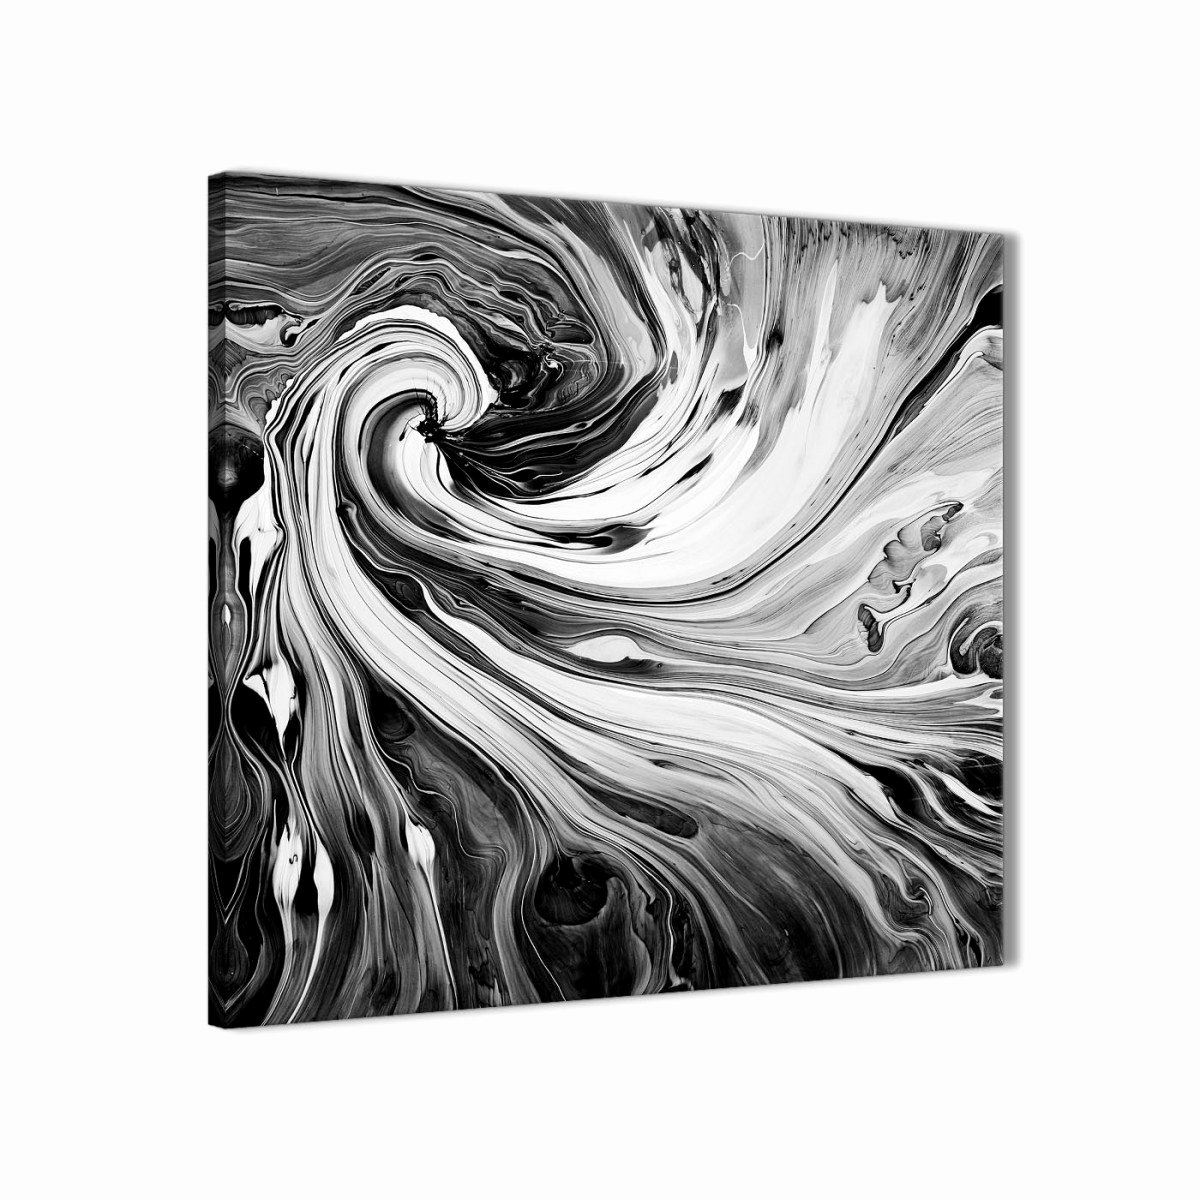 Black White Abstract Painting Luxury Black White Grey Swirls Modern Abstract Canvas Wall Art